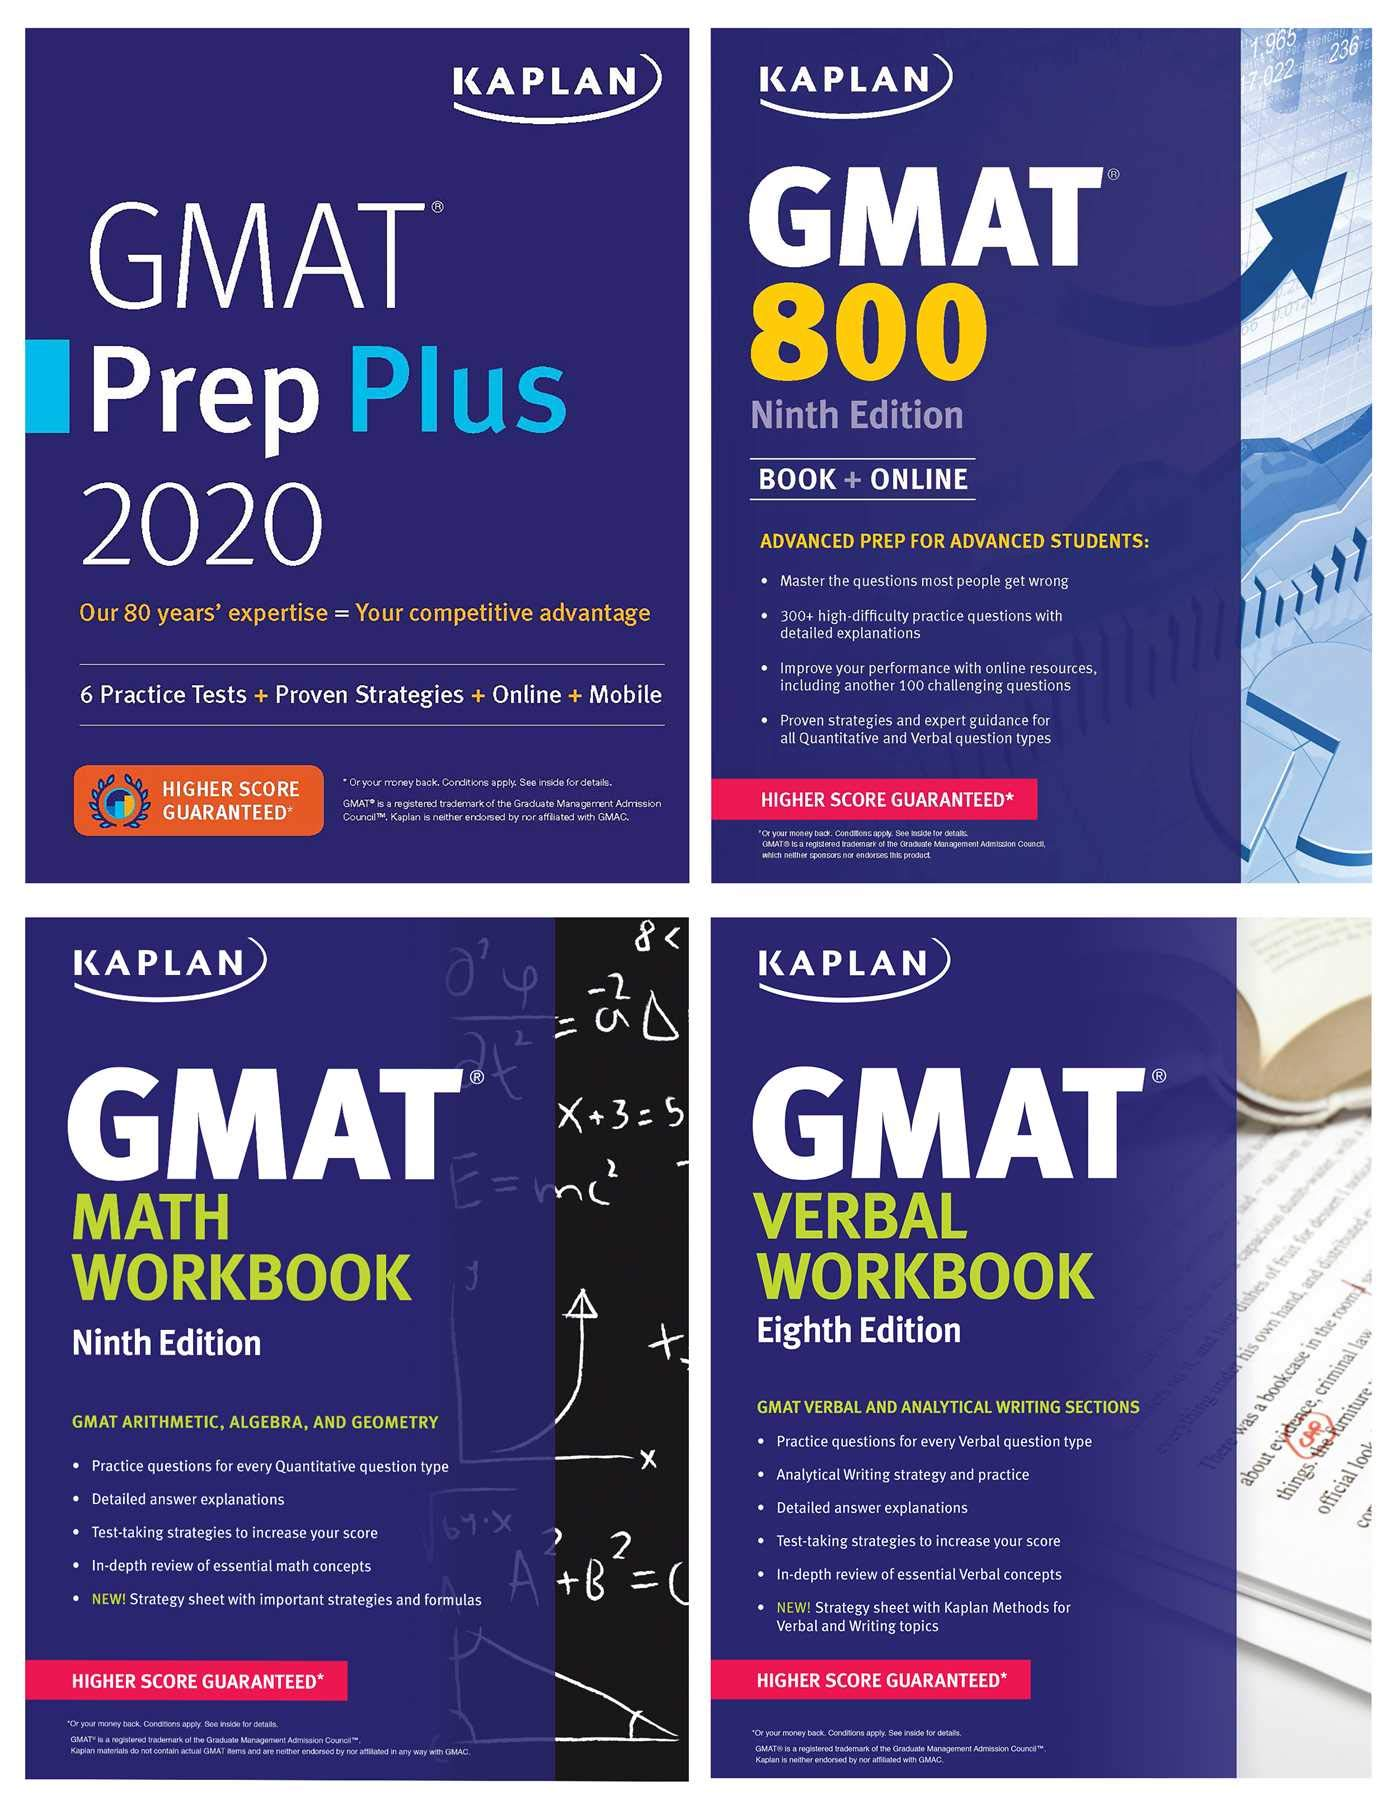 Best Seller Books 2020.Gmat Complete 2020 The Ultimate In Comprehensive Self Study